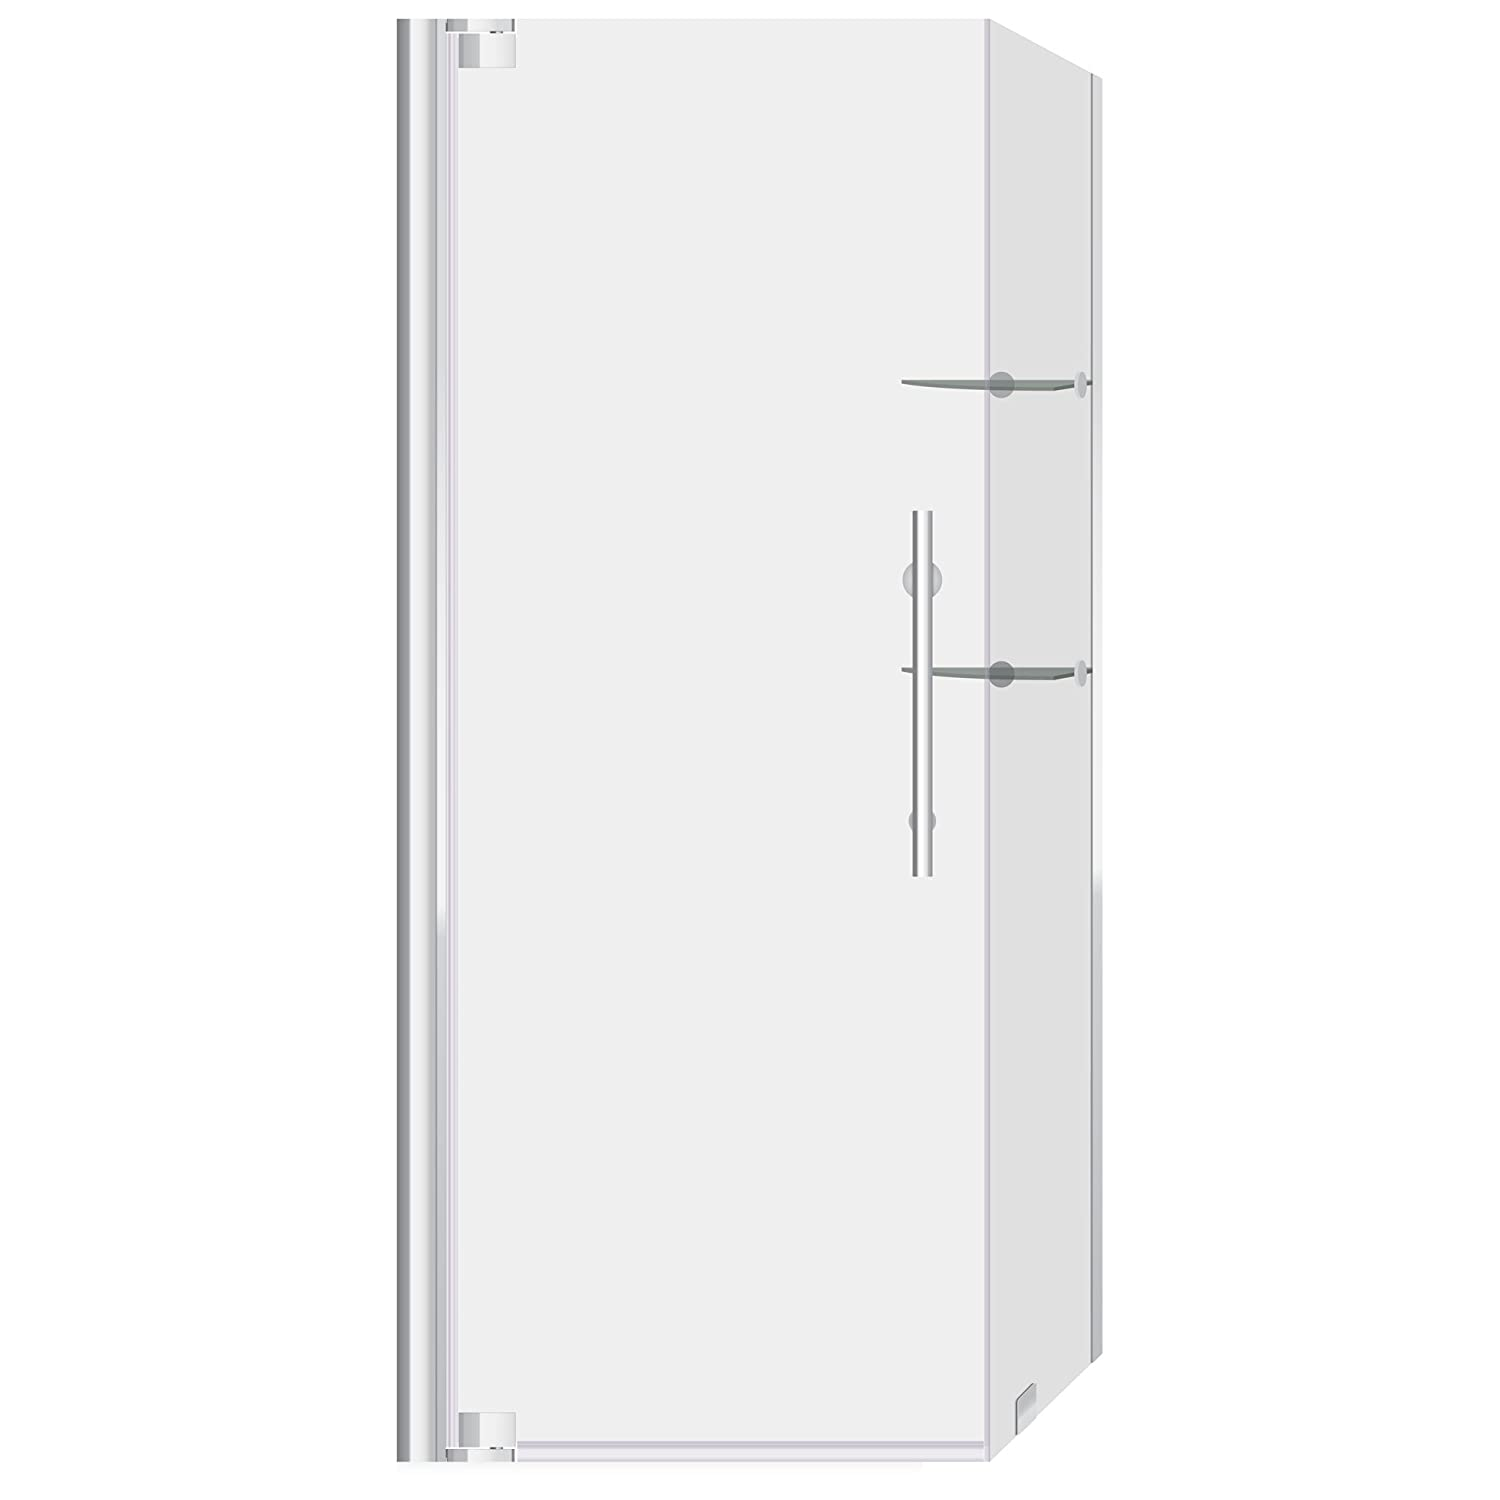 """cheap LessCare 29 3/8-30""""W x 72""""H x 29-30""""D Glass and Stainless Steel Chrome Semi-Frameless Swing-out Shower Enclosure"""